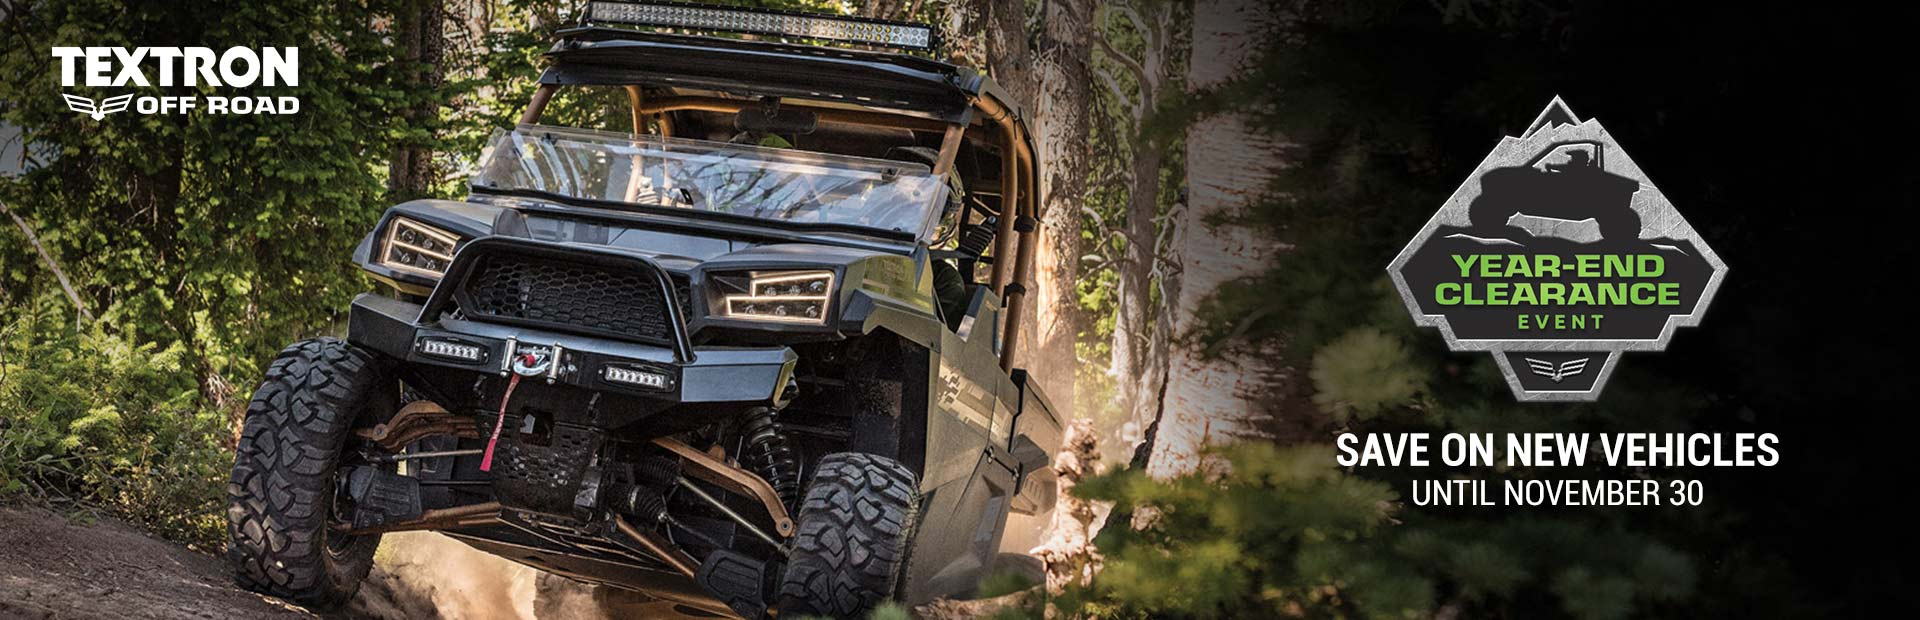 Textron Off Road: Year End Clearance